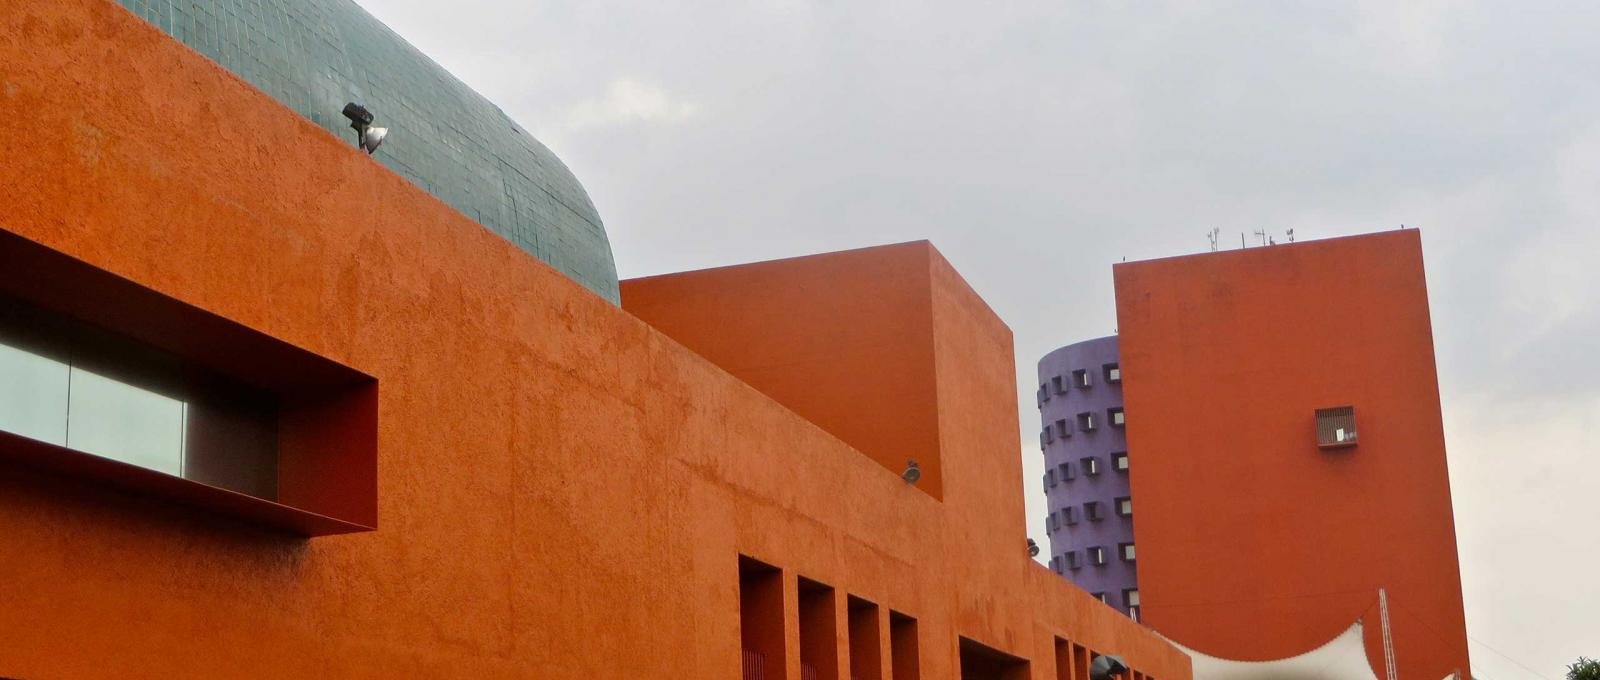 Centro Nacional de las Artes in Mexico City